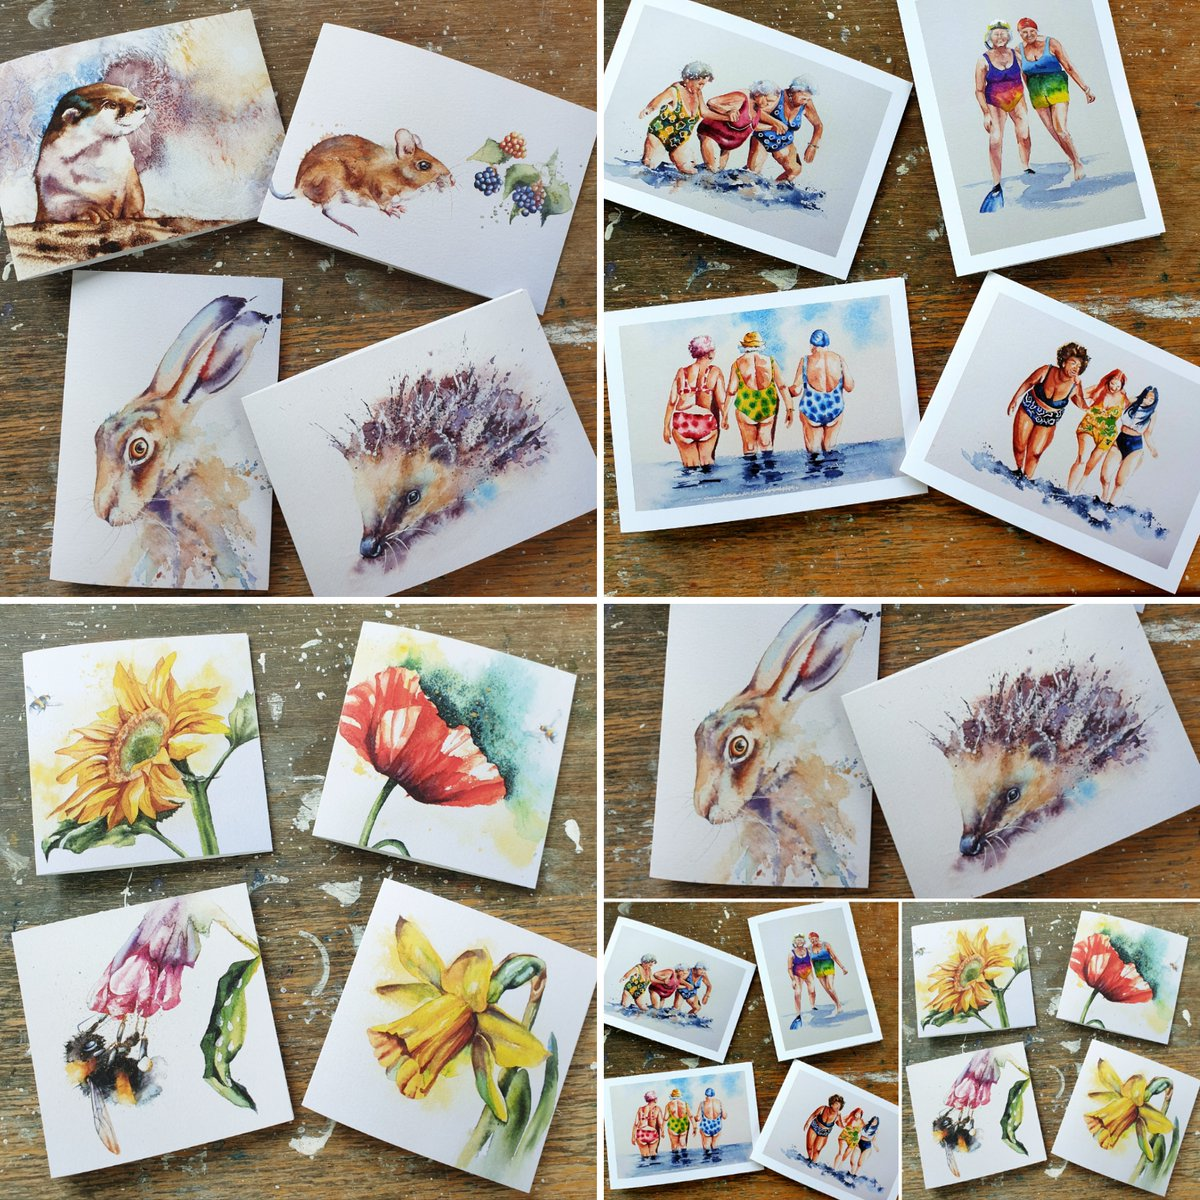 I am very excited today, brand new cards (some unseen designs) now available on my website   #watercolours #cards #wildlife #originalart #flowers #bees #Britishwildlife #artcards #hares #hedgehogs #watercolourpainting #devon #painting #bumblebees #art